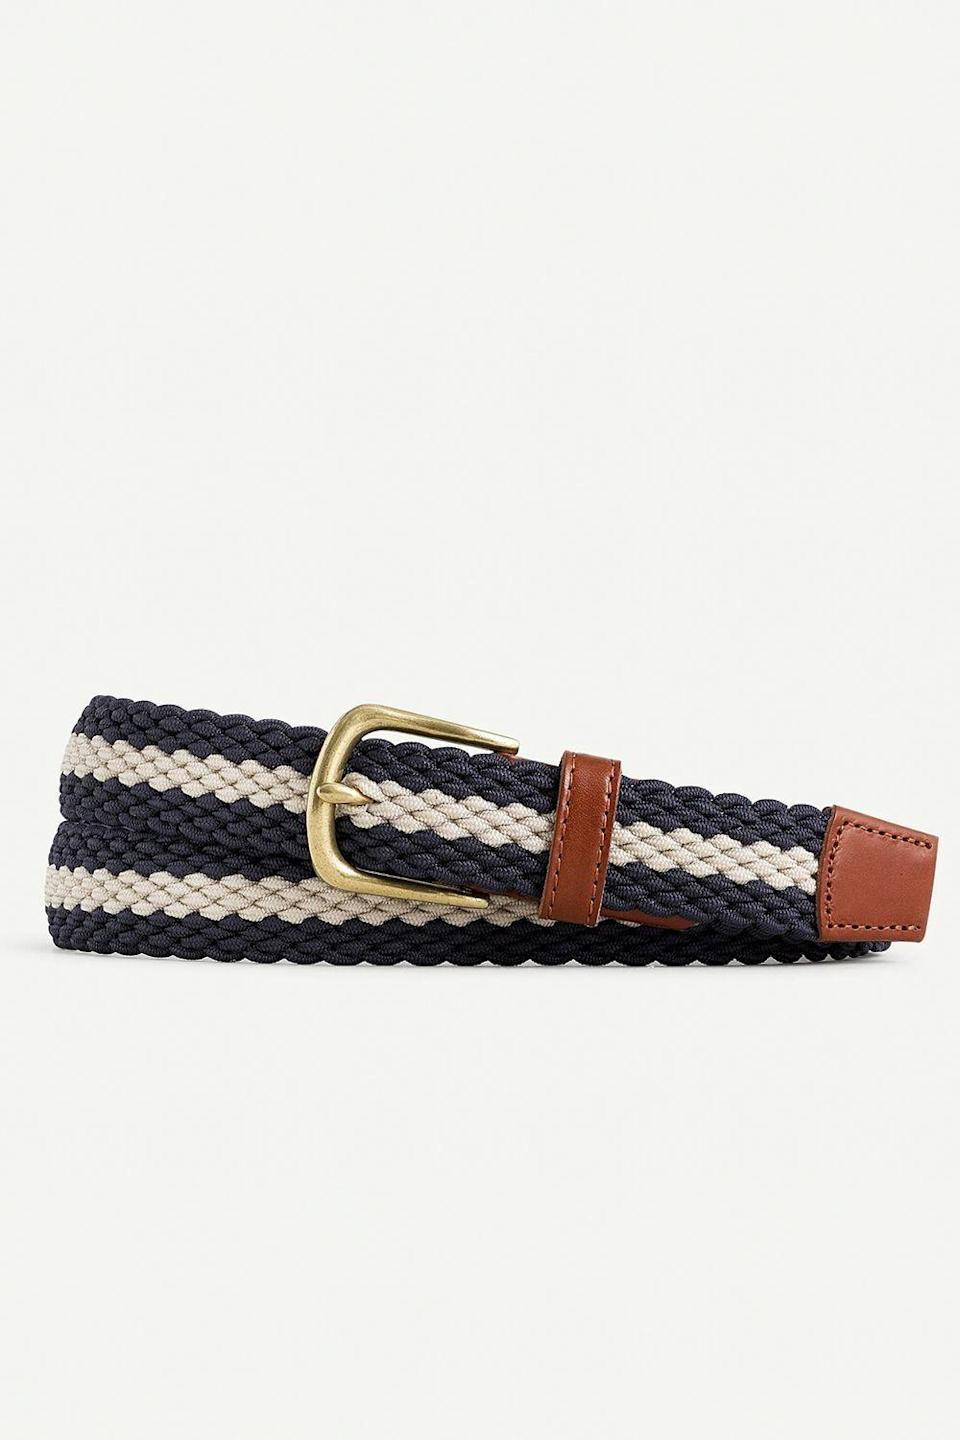 """<p><strong>J.Crew</strong></p><p>jcrew.com</p><p><strong>$49.50</strong></p><p><a href=""""https://go.redirectingat.com?id=74968X1596630&url=https%3A%2F%2Fwww.jcrew.com%2Fp%2FAW347&sref=https%3A%2F%2Fwww.oprahdaily.com%2Flife%2Fg32418397%2Fgifts-for-godfather%2F"""" rel=""""nofollow noopener"""" target=""""_blank"""" data-ylk=""""slk:Shop Now"""" class=""""link rapid-noclick-resp"""">Shop Now</a></p><p>A sharp braided belt will keep your godfather looking fashionable everywhere from the boardroom to the boat. </p>"""